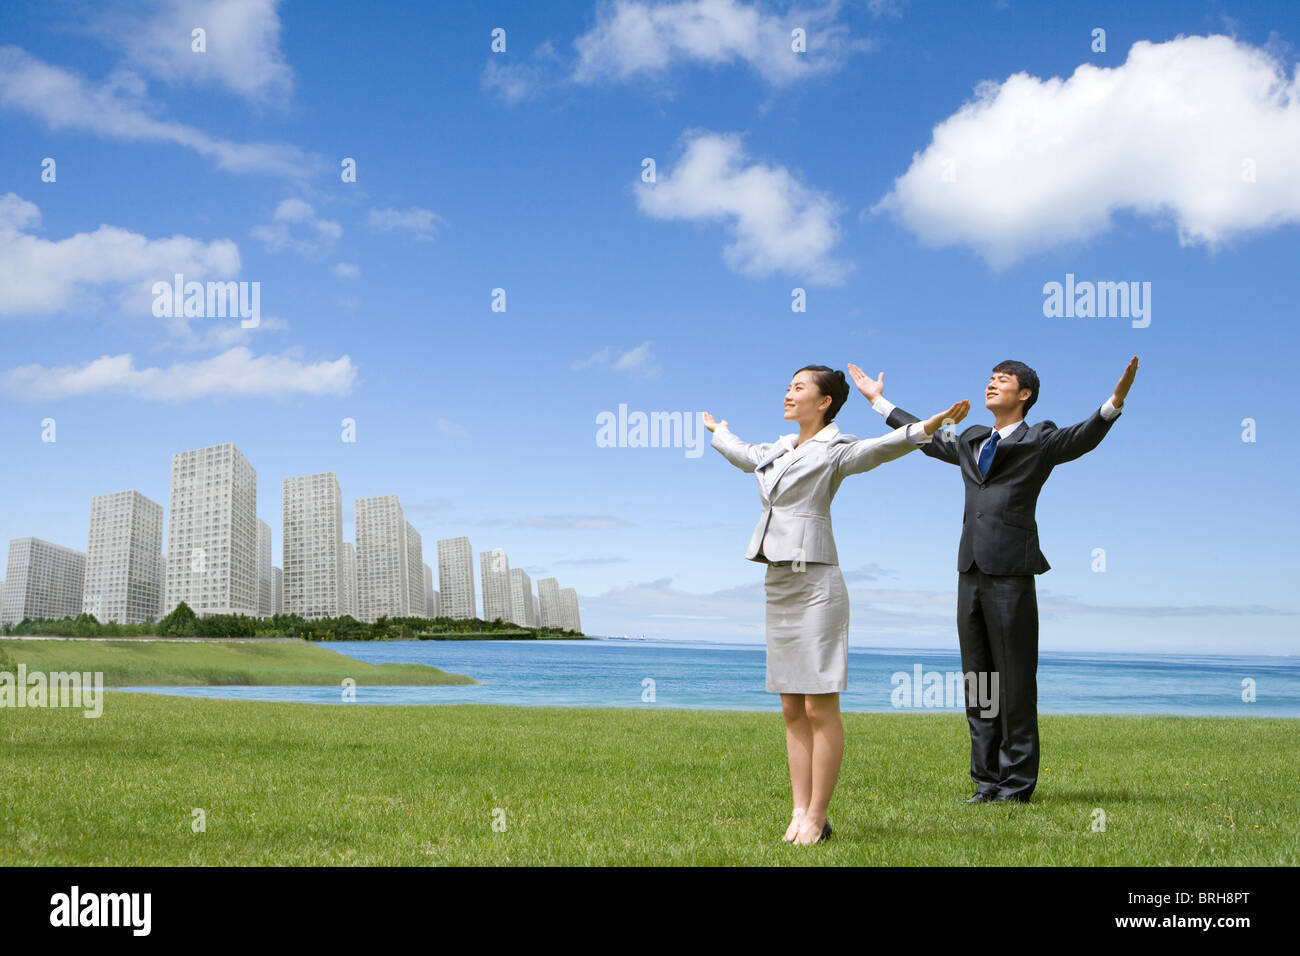 Businesspeople with their arms outstretched in an urban park - Stock Image